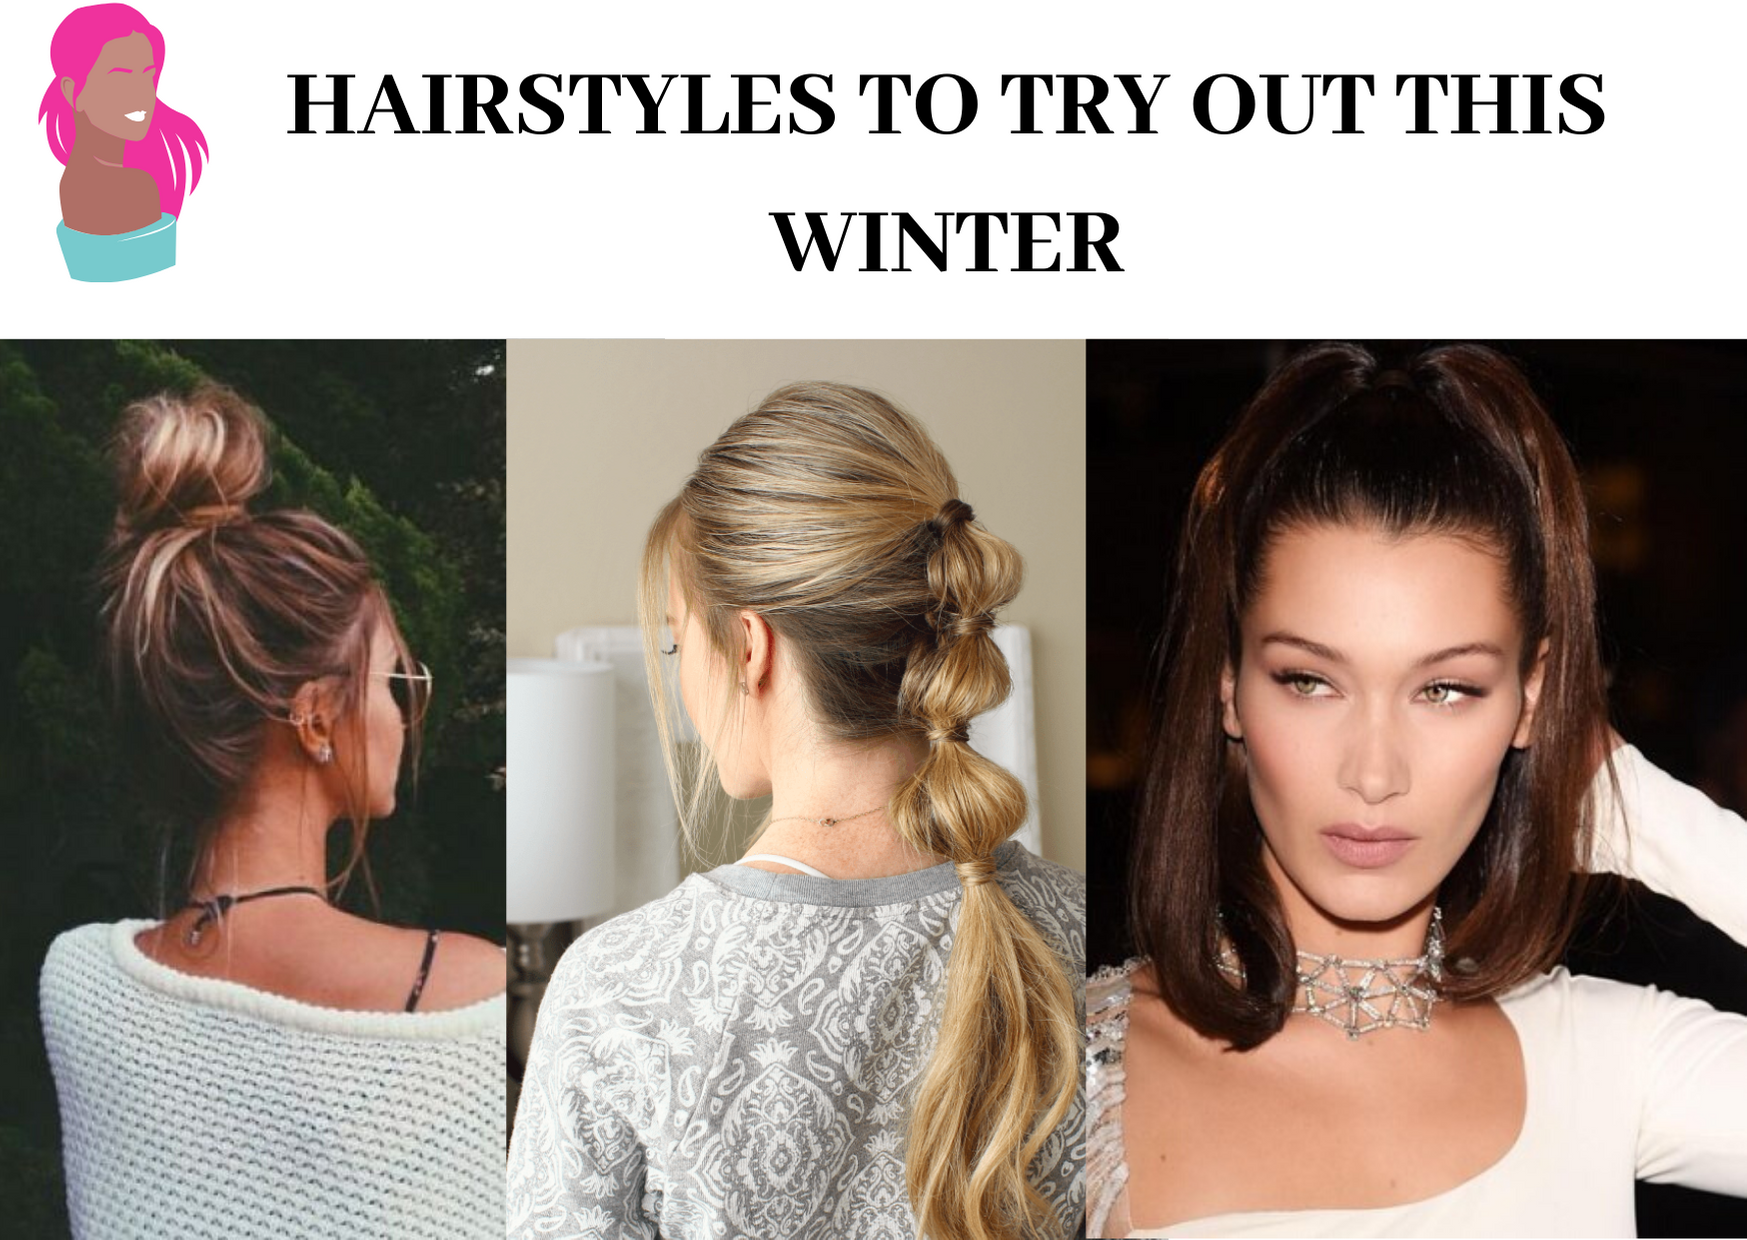 Hairstyles You Need To Try Out This Winter Hairstyles Winterhairstyles Hair Styles Easy Hairstyles Hair Tutorial